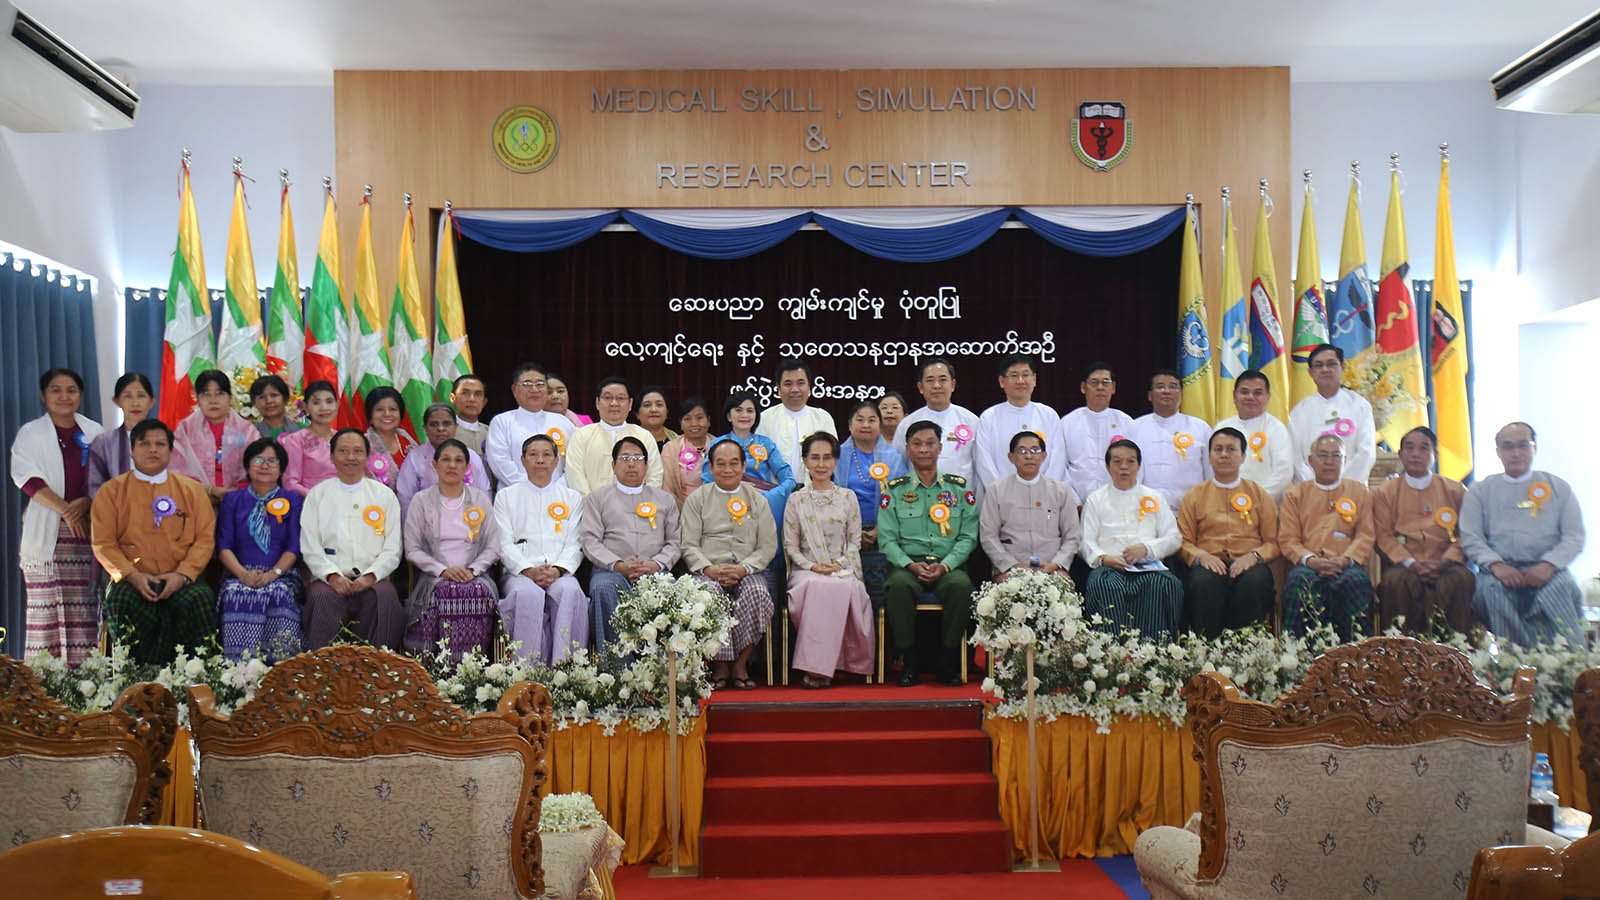 State Counsellor Daw Aung San Suu Kyi poses for photo together with dignitaries at the ceremony to open the Medical Skill, Simulation and Research Center in Yangon.Photo: Thet Aung